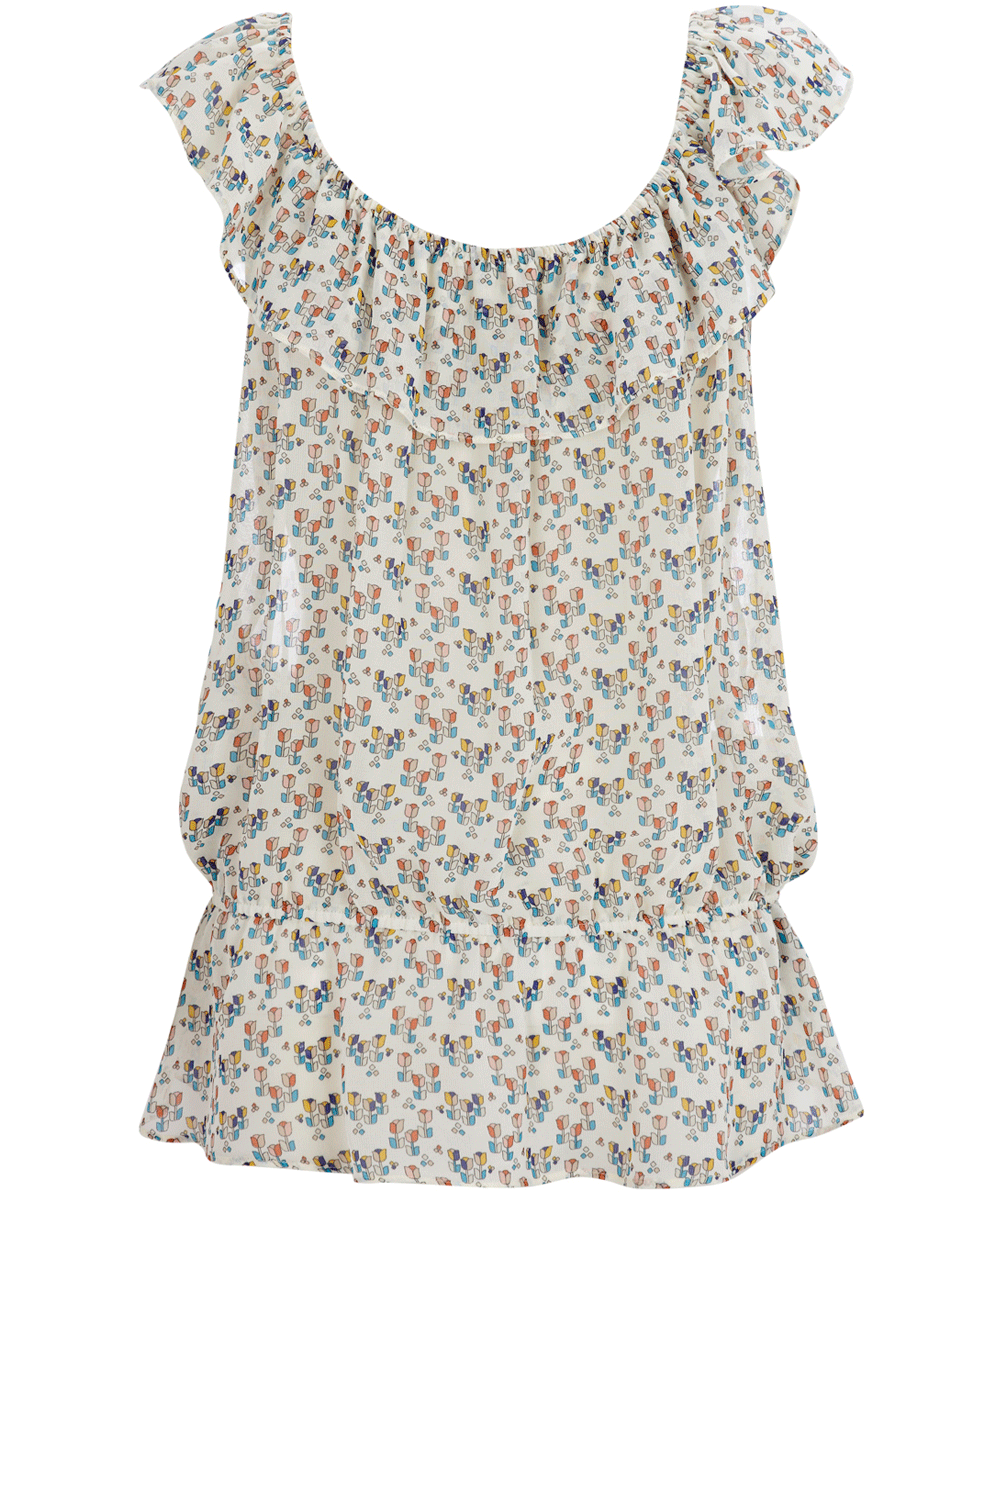 Tulip Print Top - neckline: round neck; sleeve style: sleeveless; pattern: print, floral - light, florals, patterned/print; waist detail: elasticated waist, drop waist; style: blouson; shoulder detail: tiers/frills/ruffles; hip detail: fitted at hip; bust detail: ruching/gathering/draping/layers/pintuck pleats at bust; predominant colour: ivory; occasions: casual; length: standard; trends: prints; fibres: polyester/polyamide - 100%; material texture: jersey; fit: body skimming; sleeve length: sleeveless; pattern type: fabric; pattern size: small & light; texture group: jersey - stretchy/drapey